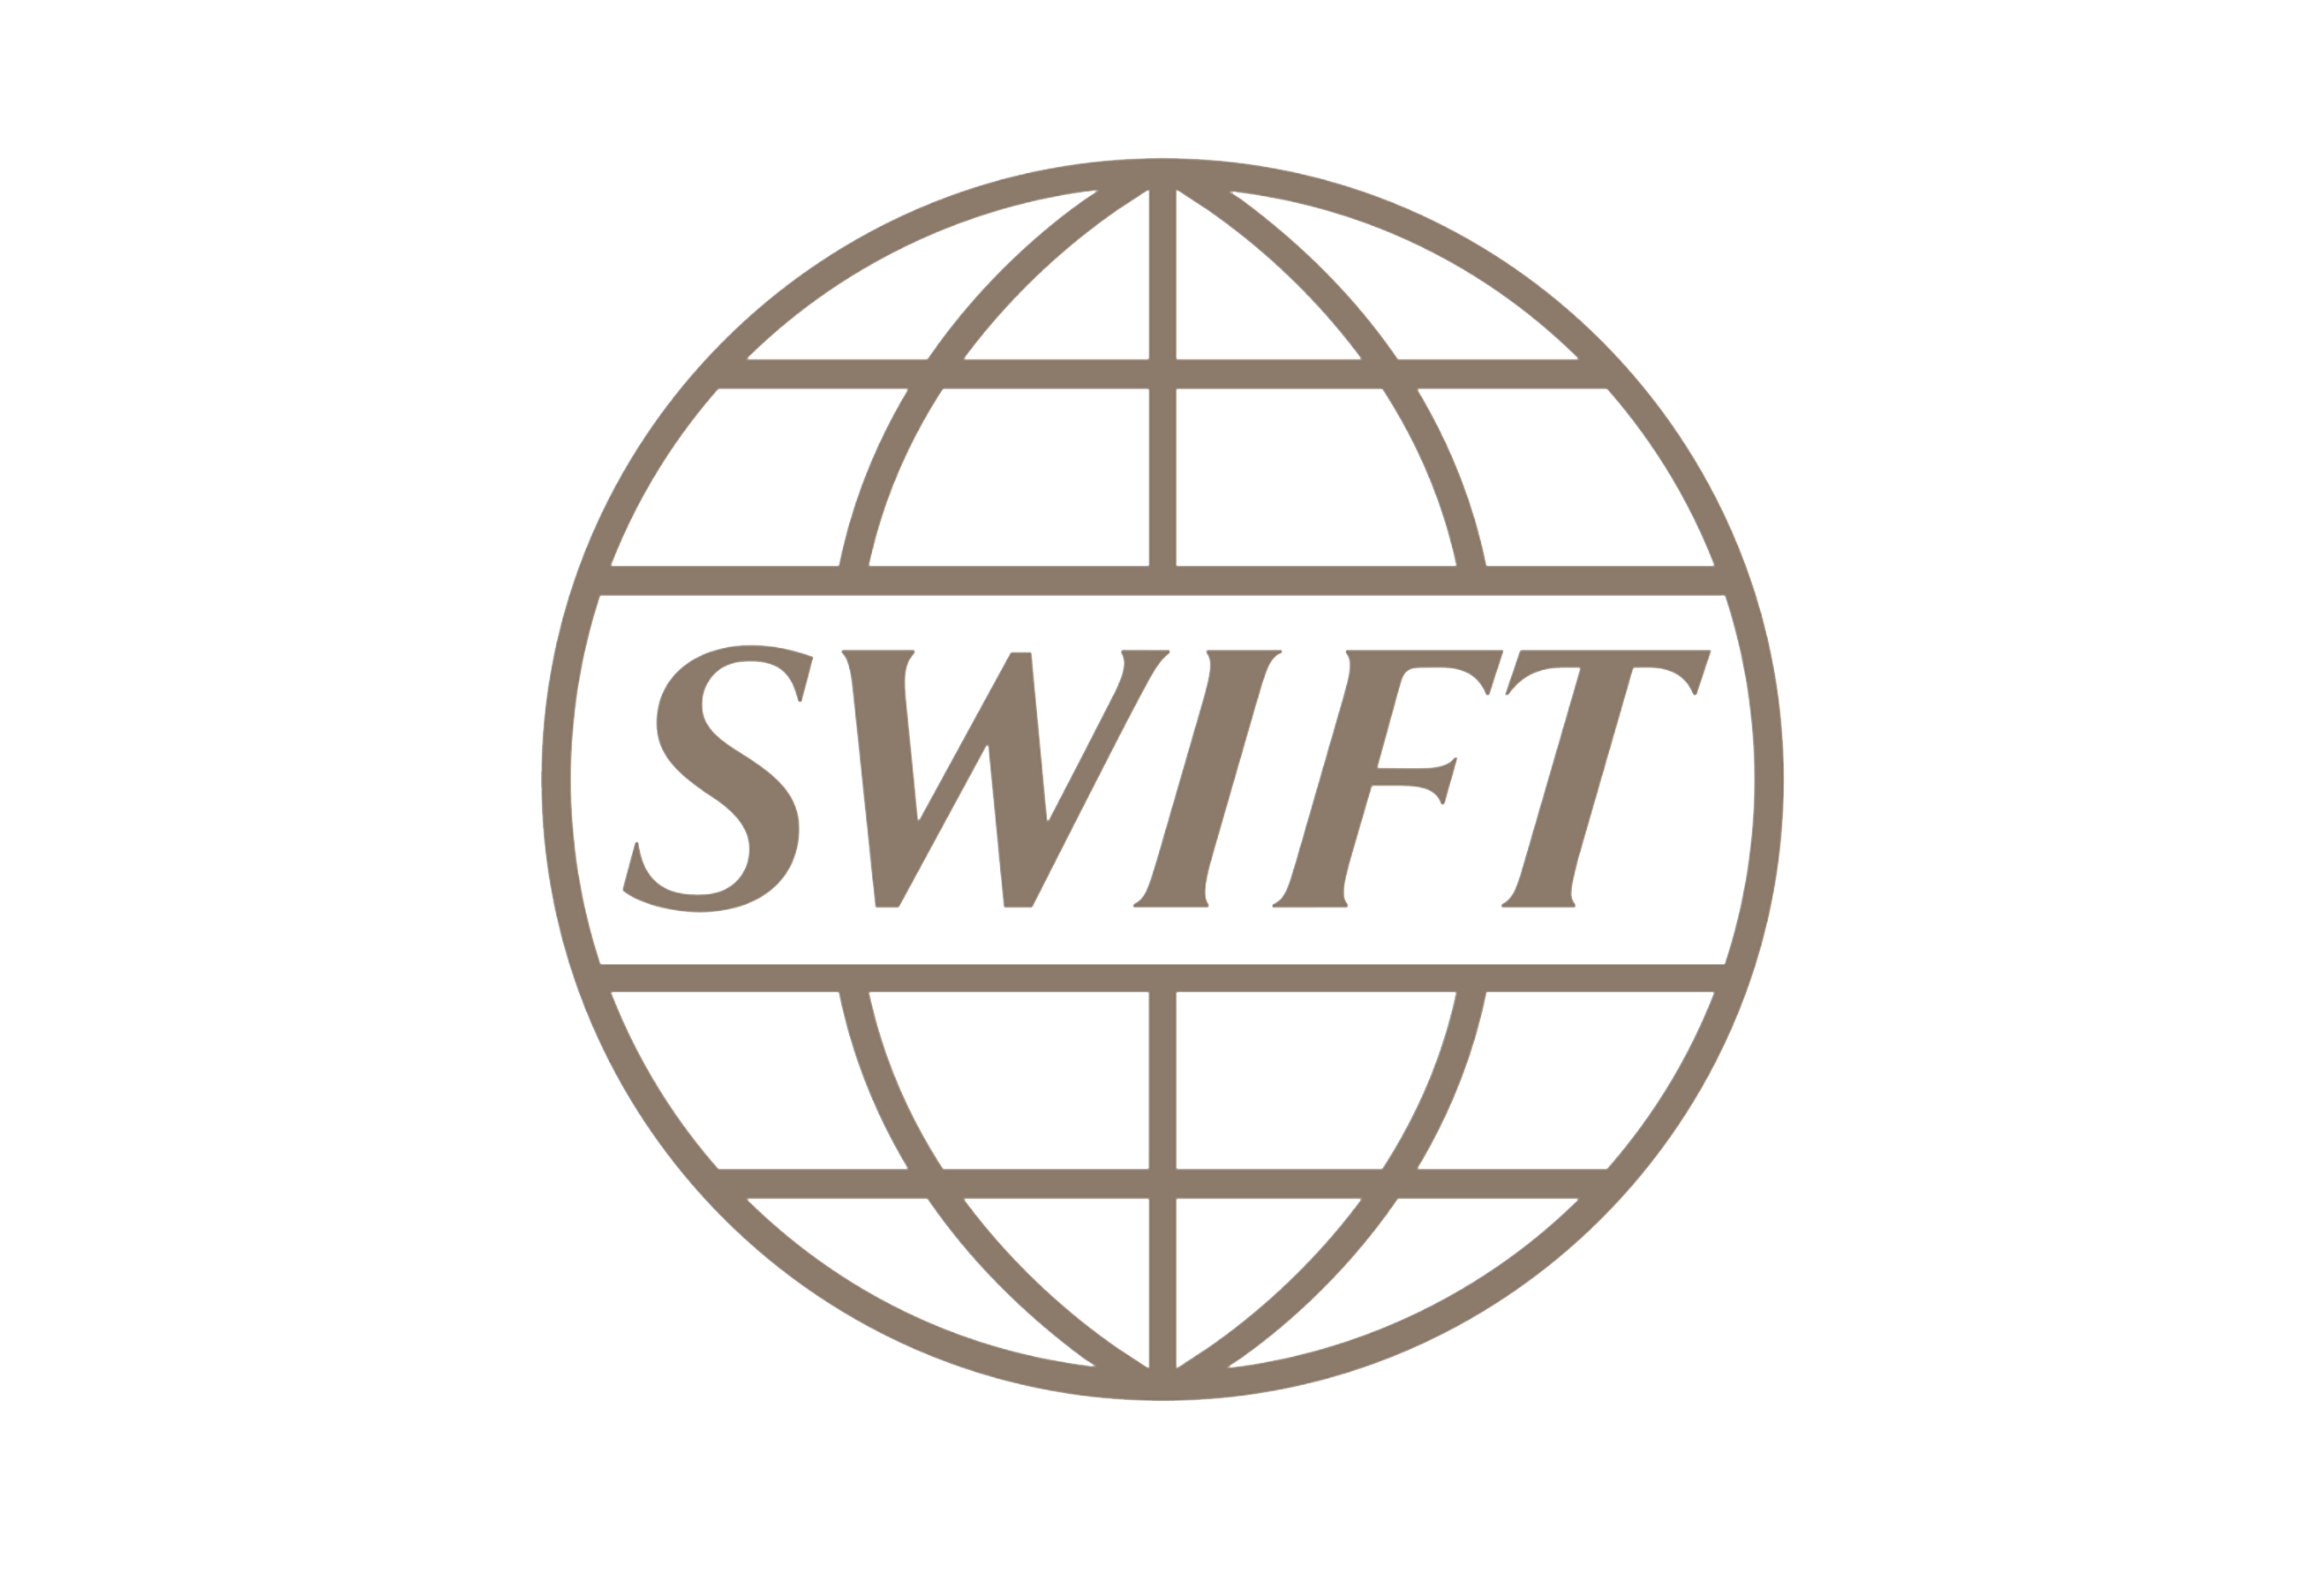 SWIFT Go Builds momentum as 100+ Banks Sign up for Service that Powers SME and Consumer Payments